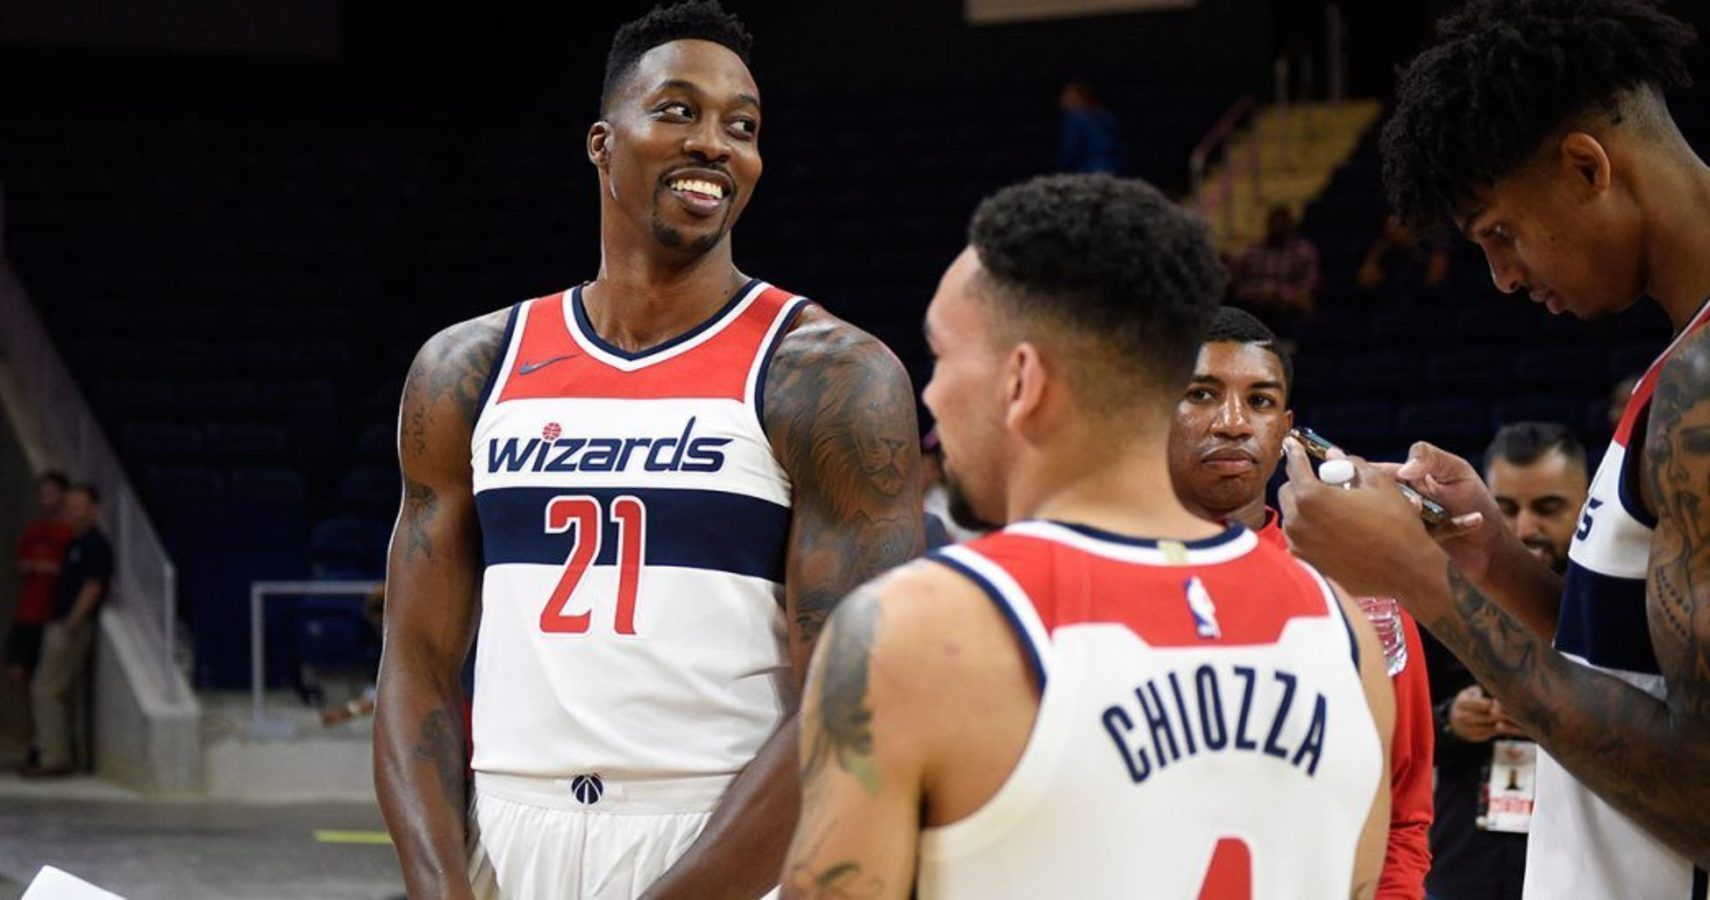 db873a359 Dwight Howard Prepares To Make Wizards Debut Following Back Injury